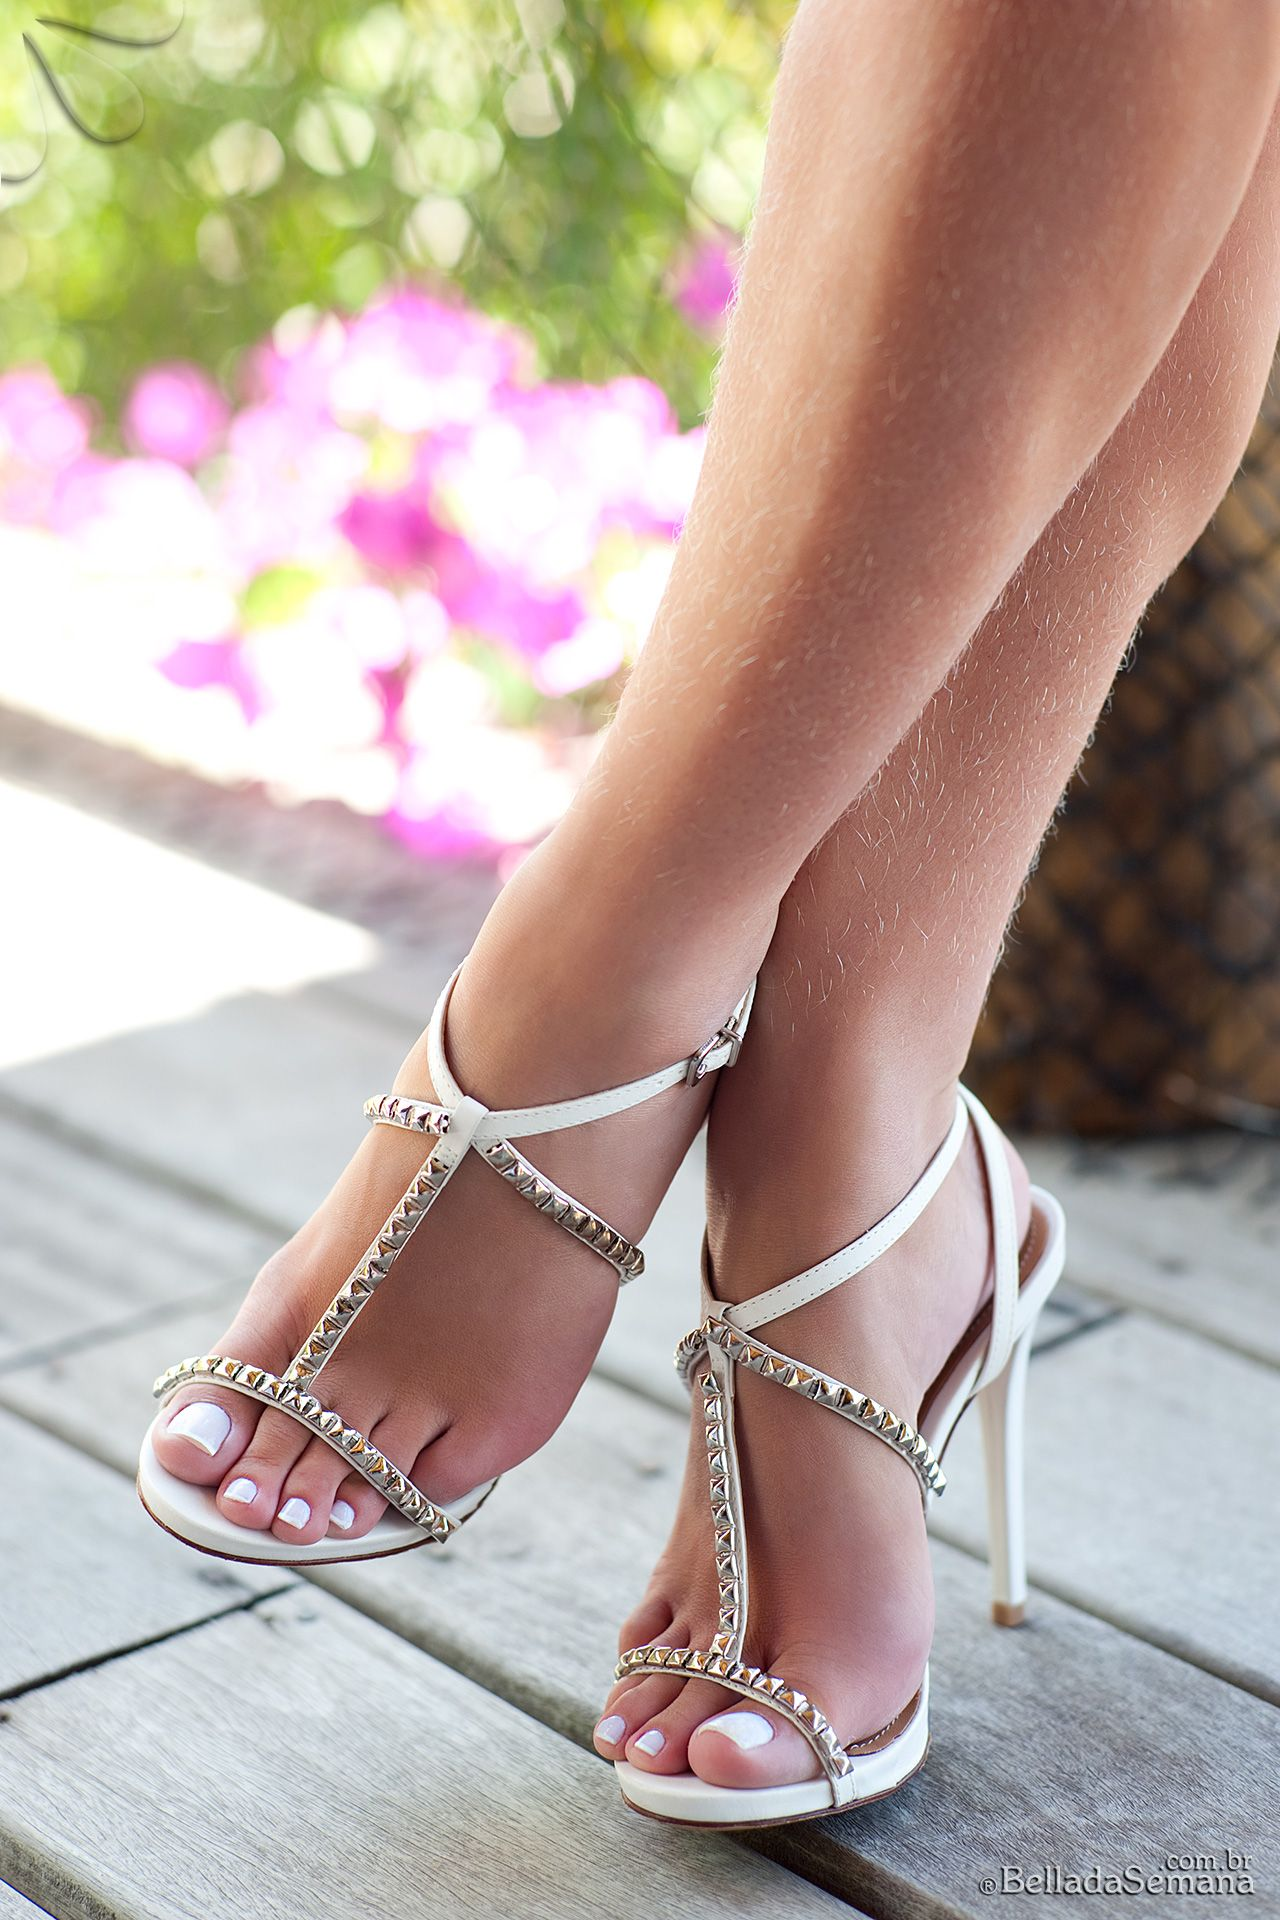 Toes Turn White In Shoes